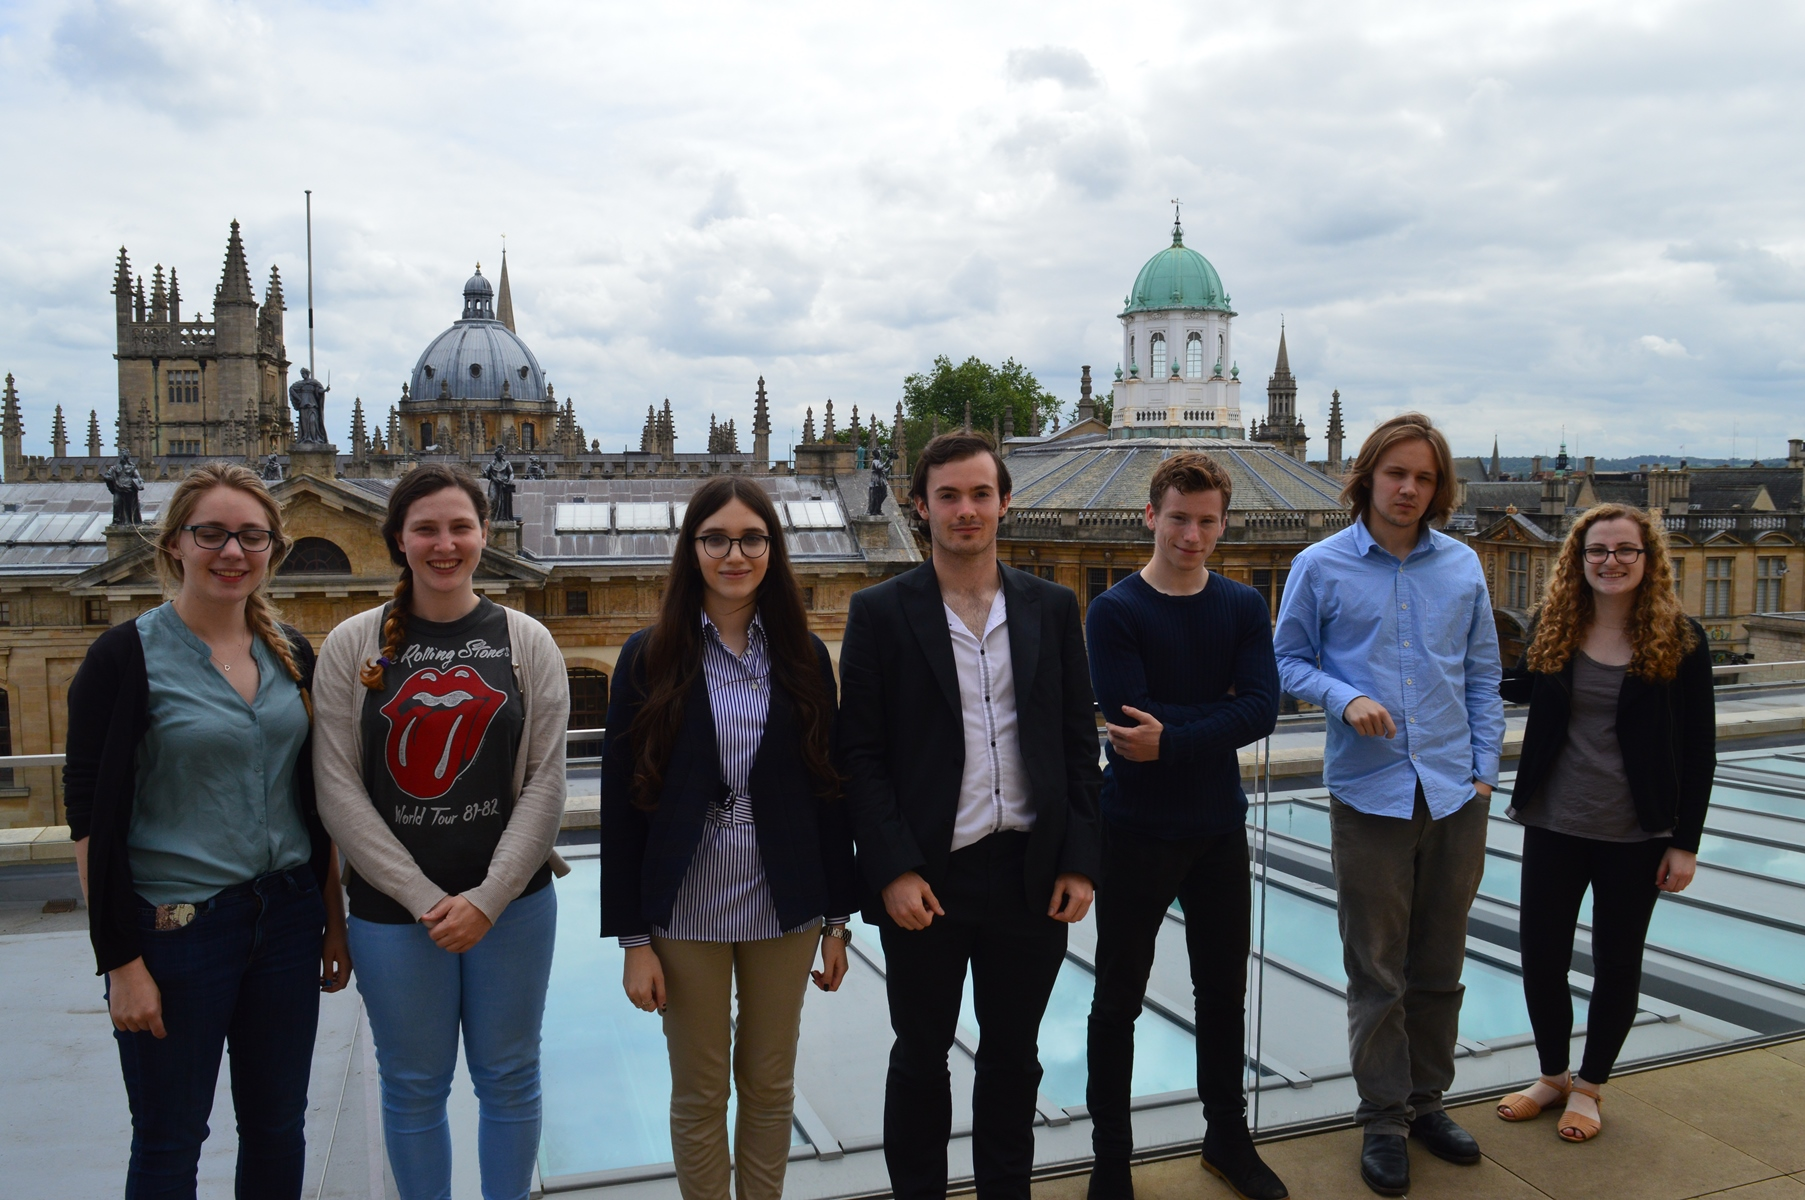 Web archiving micro-interns on the roof of the Weston Library, June 2016.